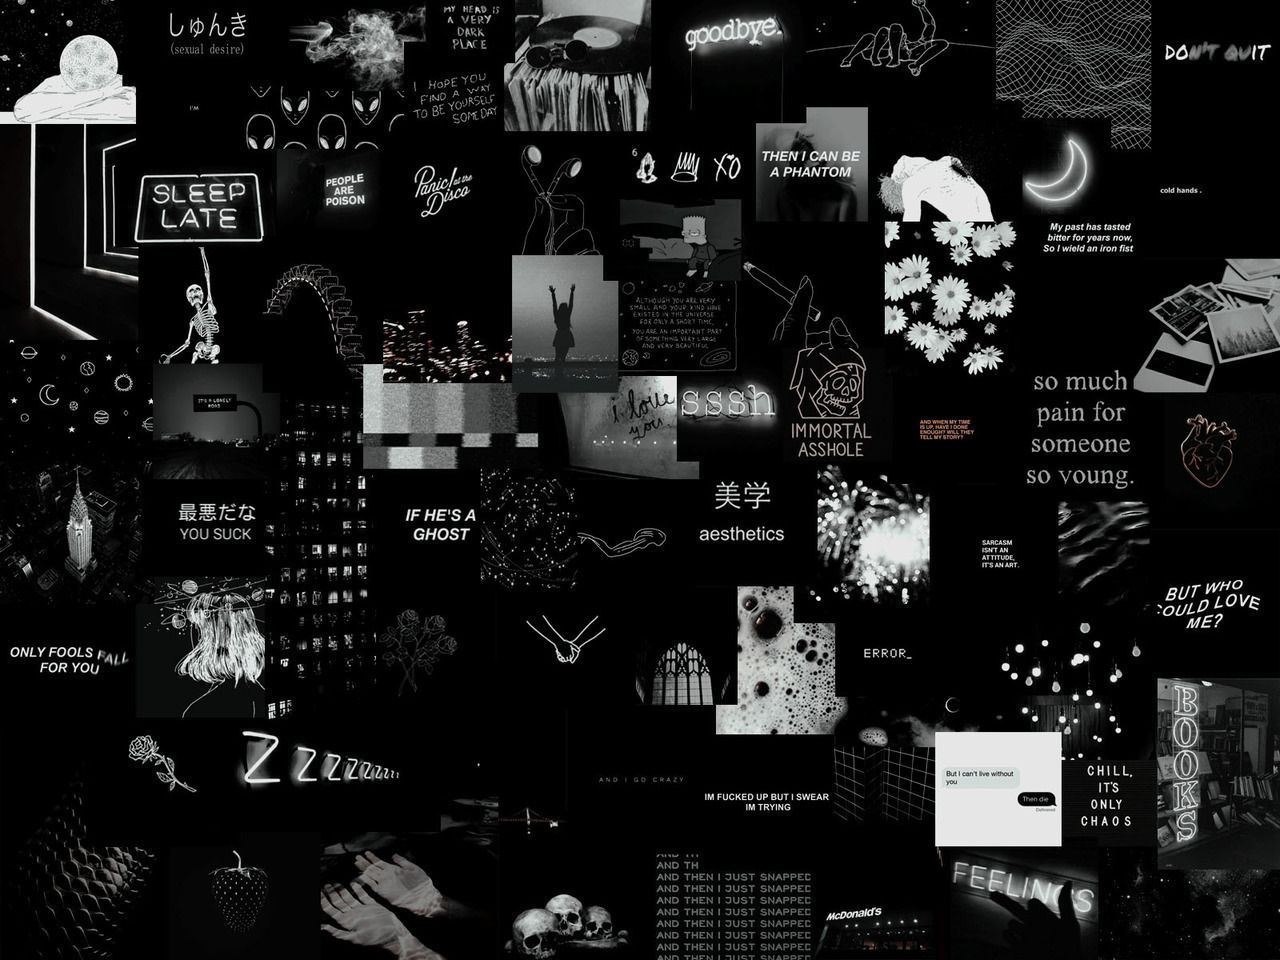 Shade Grunge Collage Laptop Wallpaper Best Picture For Wallpaper Desktop Art For You In 2020 Aesthetic Desktop Wallpaper Laptop Wallpaper Black Aesthetic Wallpaper